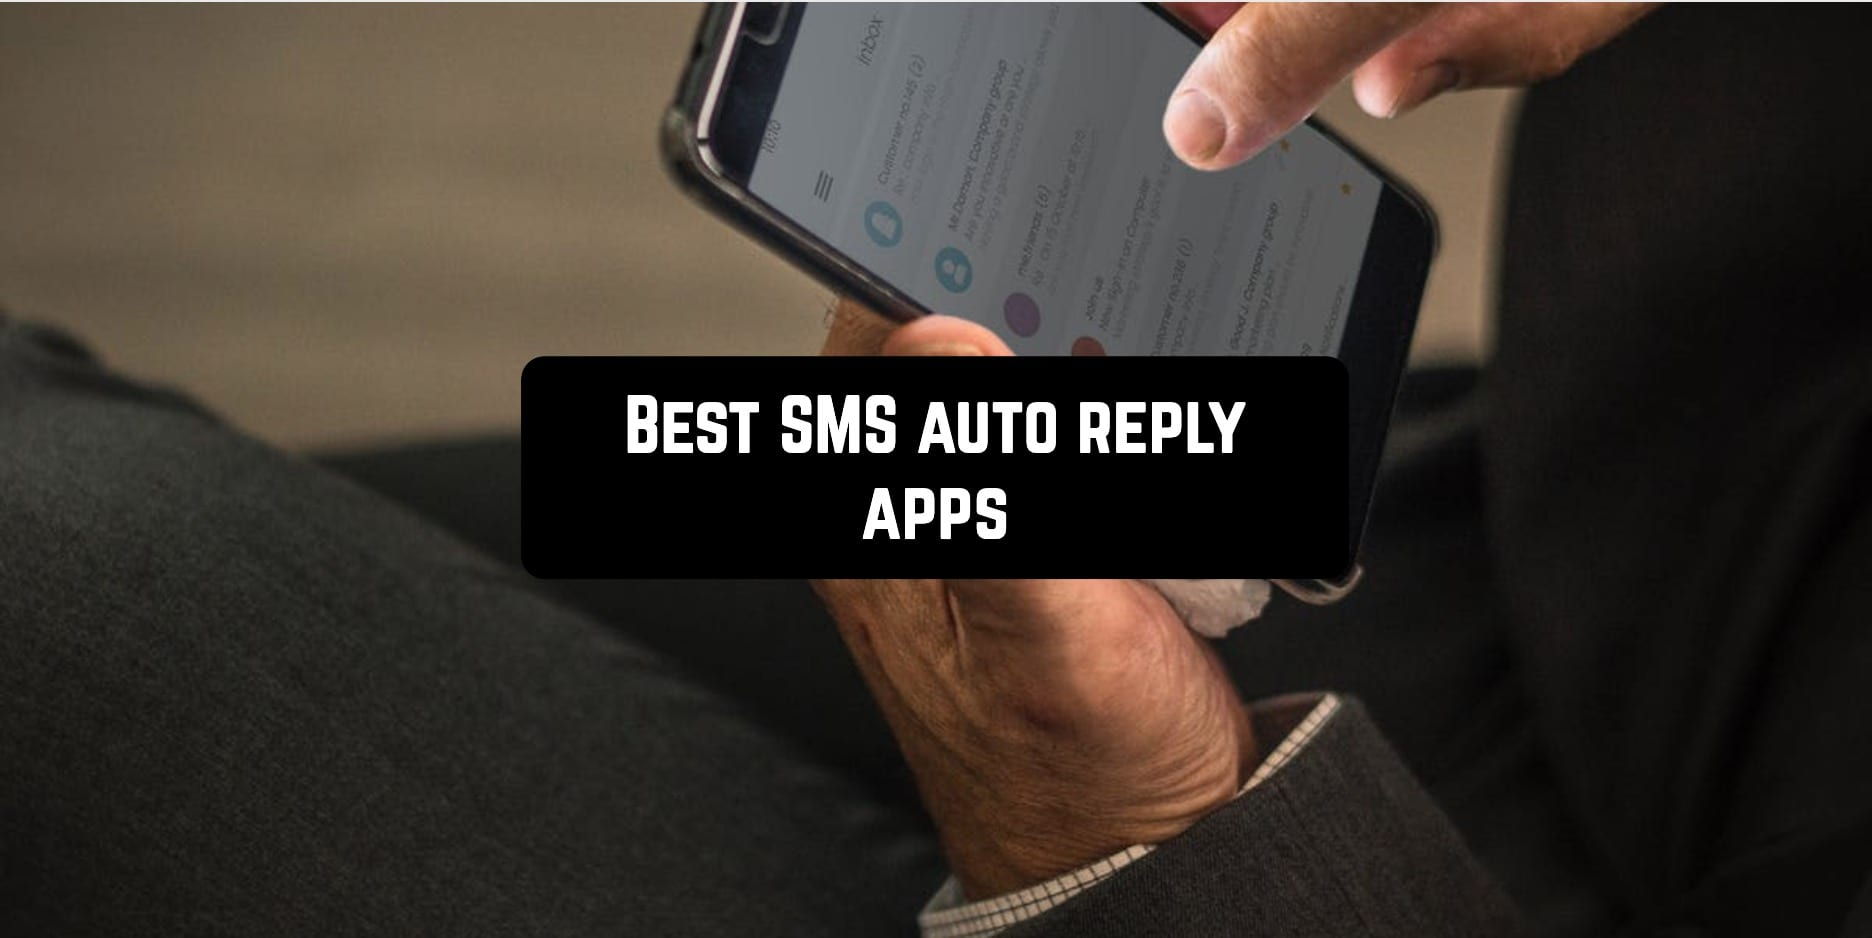 Best SMS auto reply apps